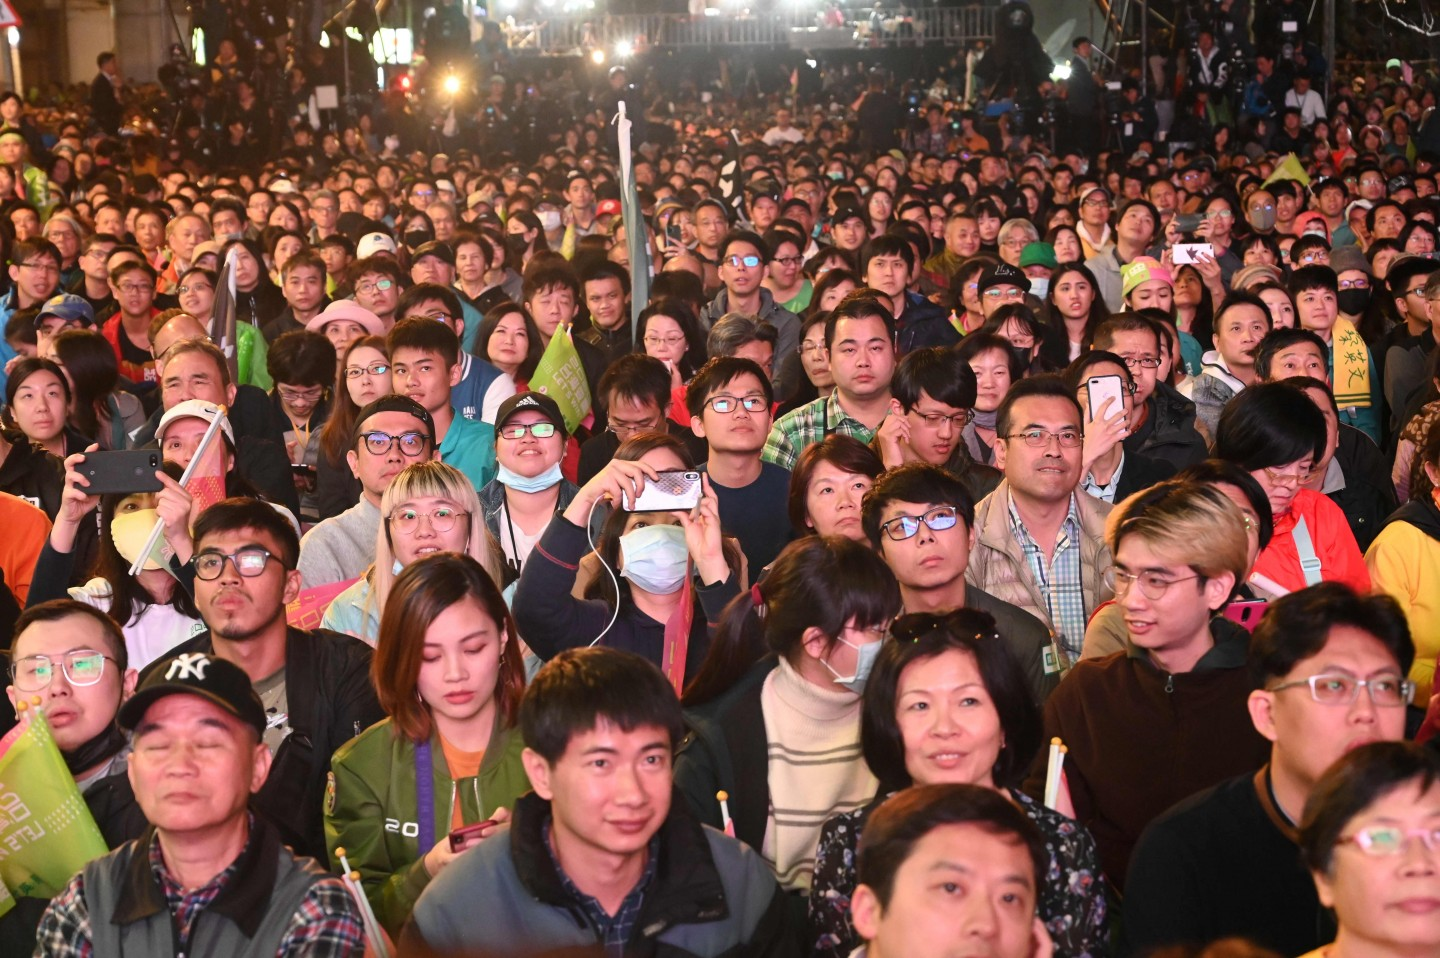 Supporters of Taiwan President Tsai Ing-wen celebrate outside the campaign headquarters in Taipei on 11 January 2020. (Sam Yeh/AFP)